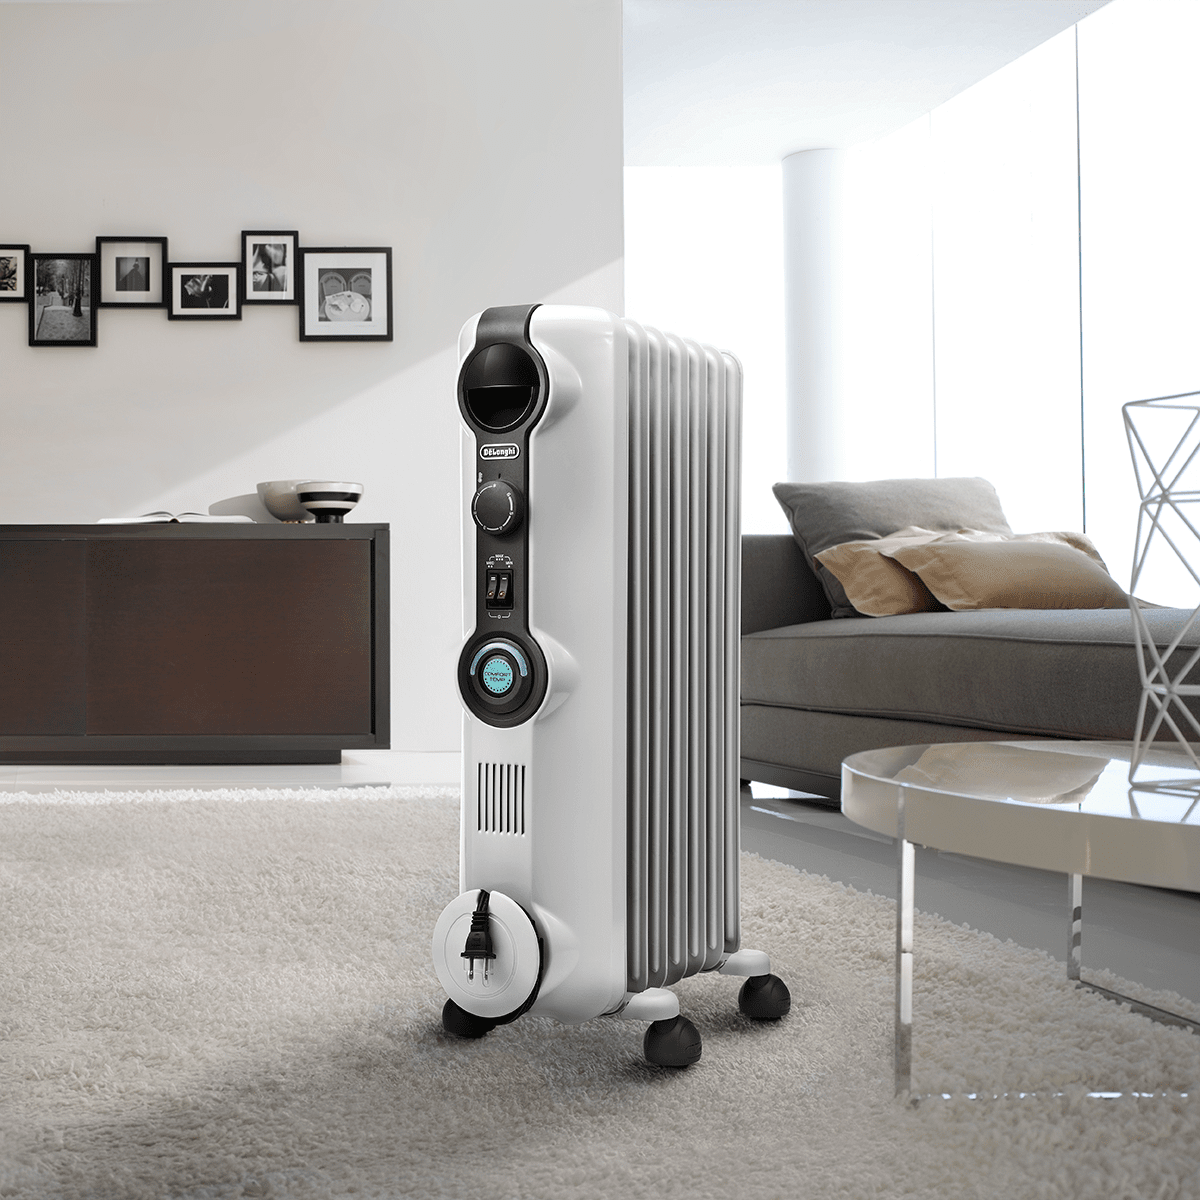 DeLonghi Comfort Temp Full Room Radiant Heater Model: KH390715CM